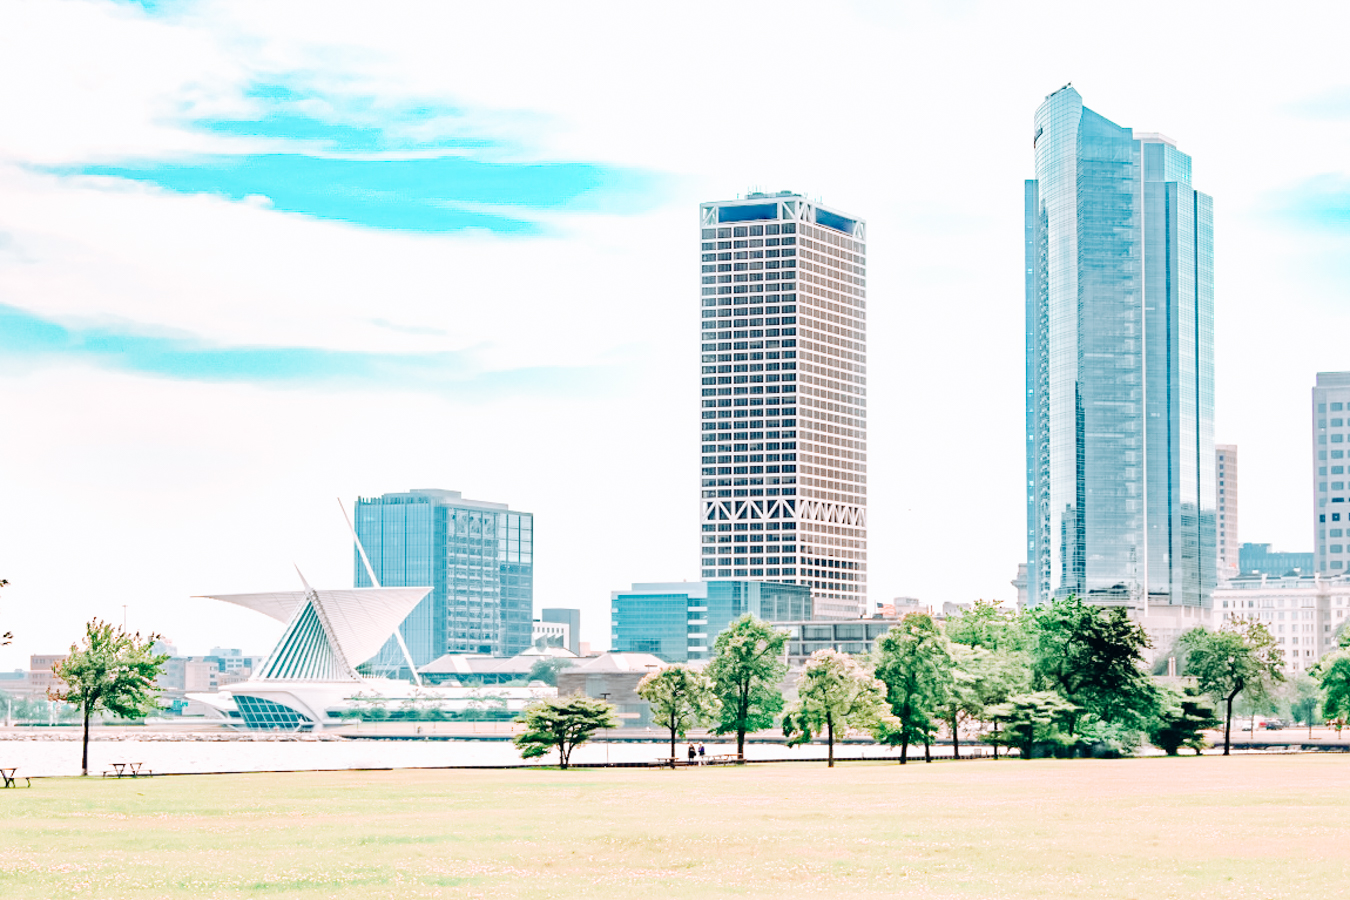 Grass, trees, and buildings in Milwaukee